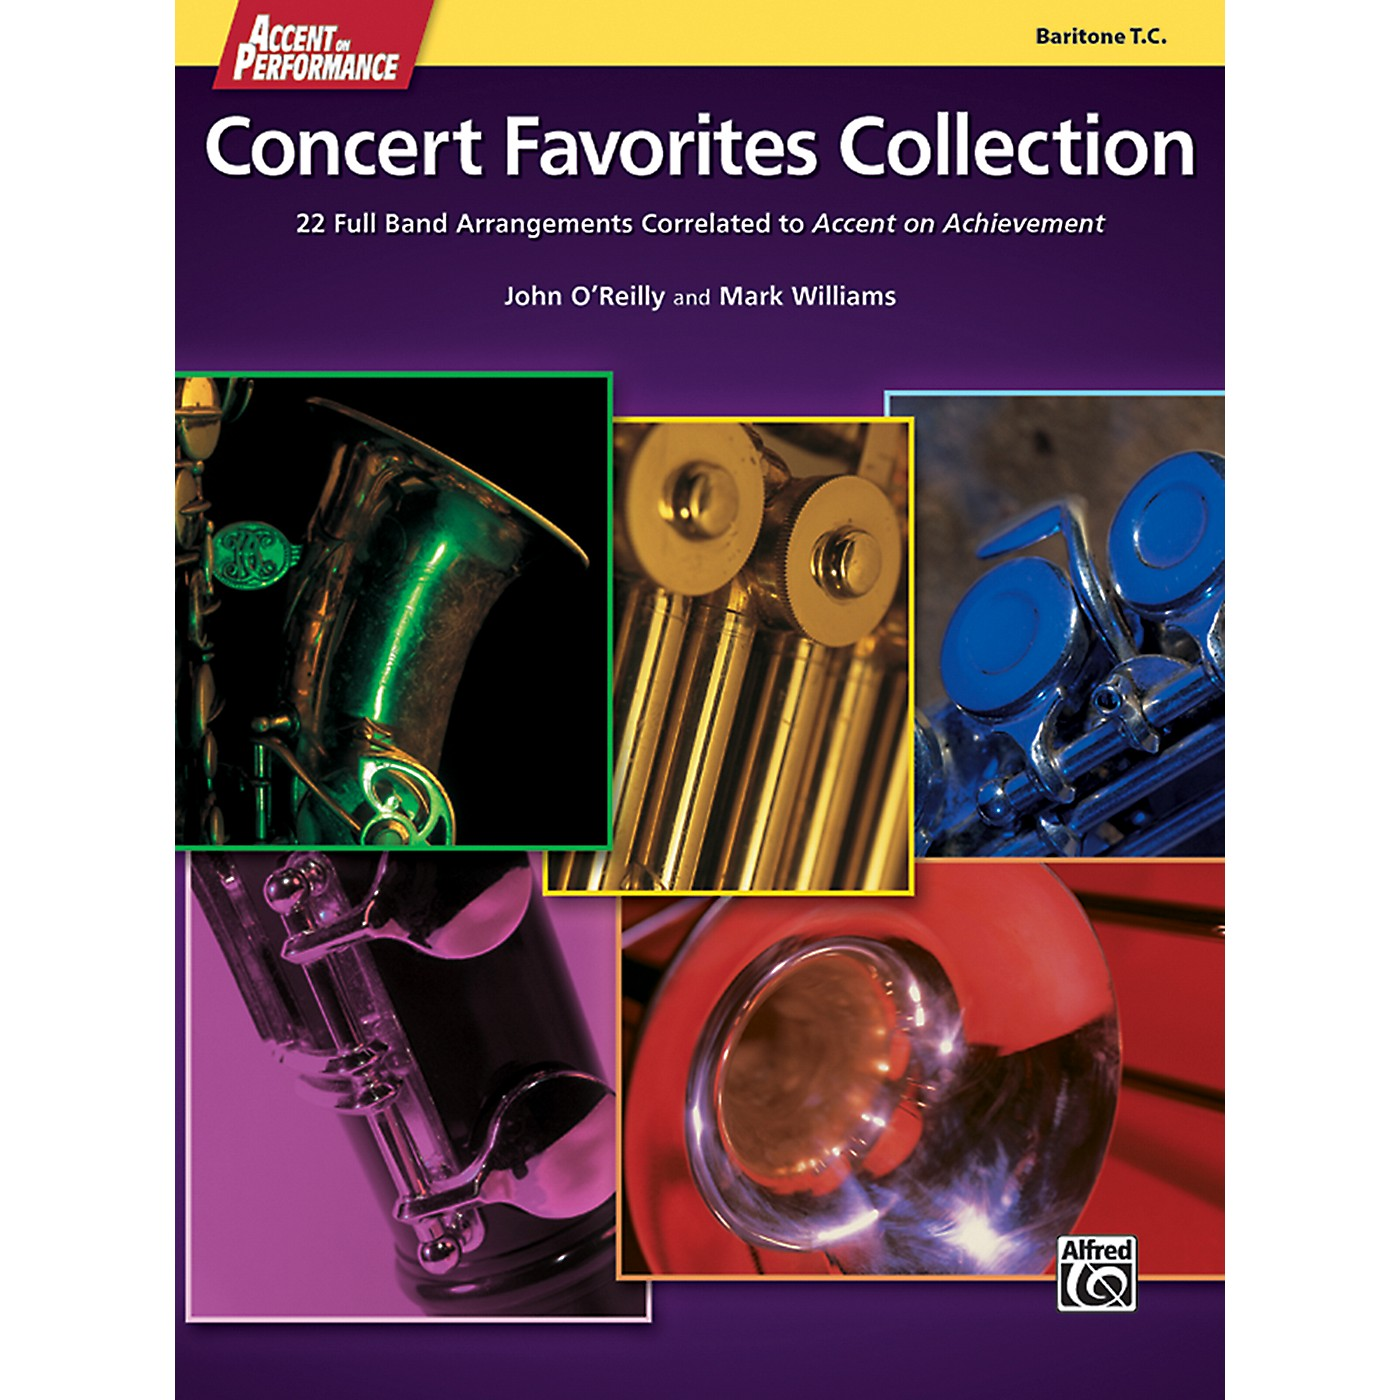 Alfred Accent on Performance Concert Favorites Collection Bari Treble Clef Book thumbnail